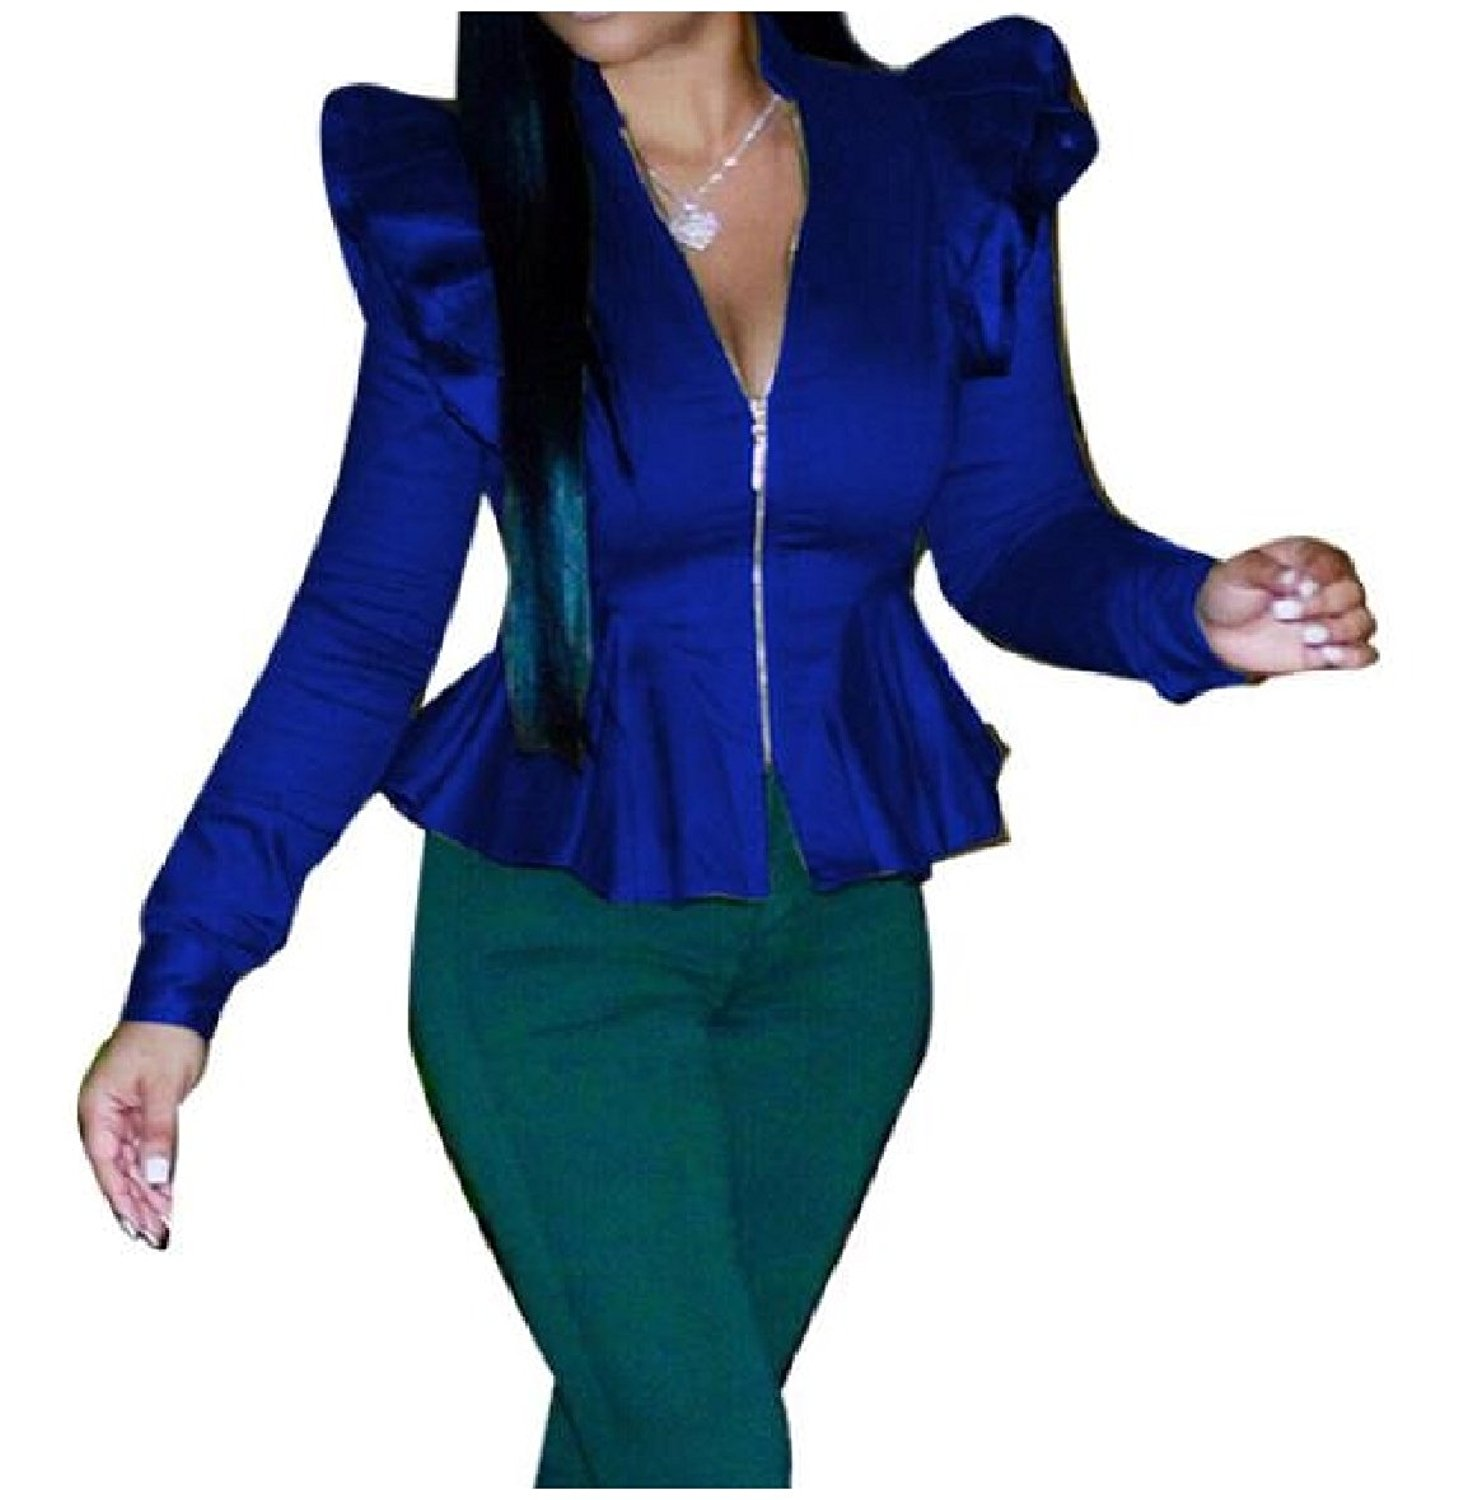 Zimaes-Women Solid Colored Suit Flouncing Long-Sleeve Blazer Zip-up Stand Collar Blouse Shirt